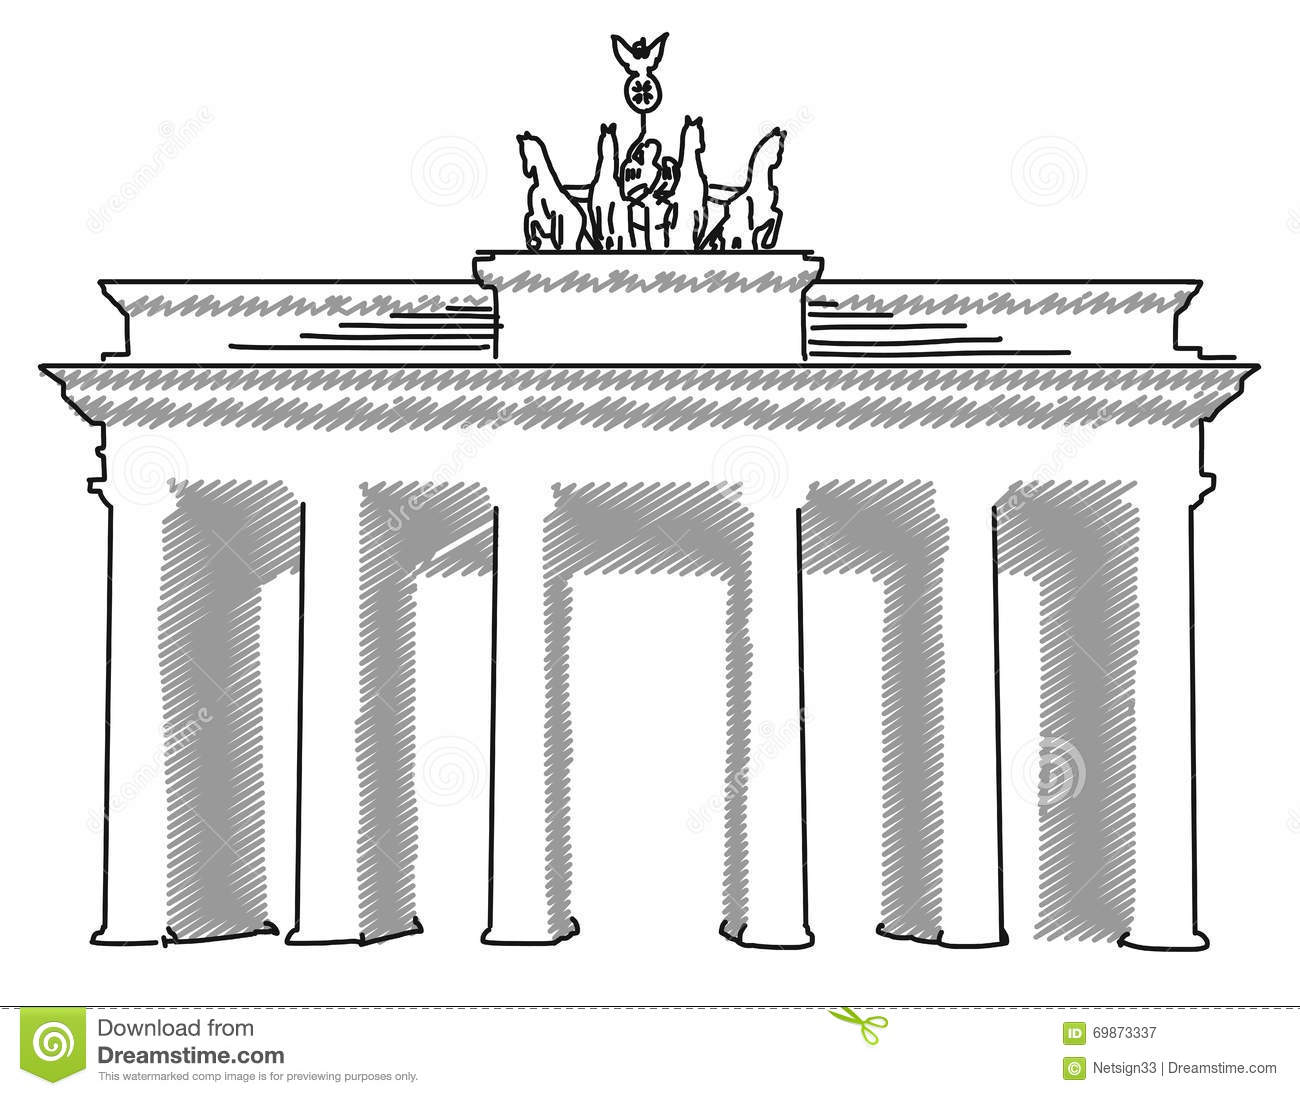 Berlin Brandenburger Tor Stock Illustrations 146 Berlin Brandenburger Tor Stock Illustrations Vectors Clipart Dreamstime